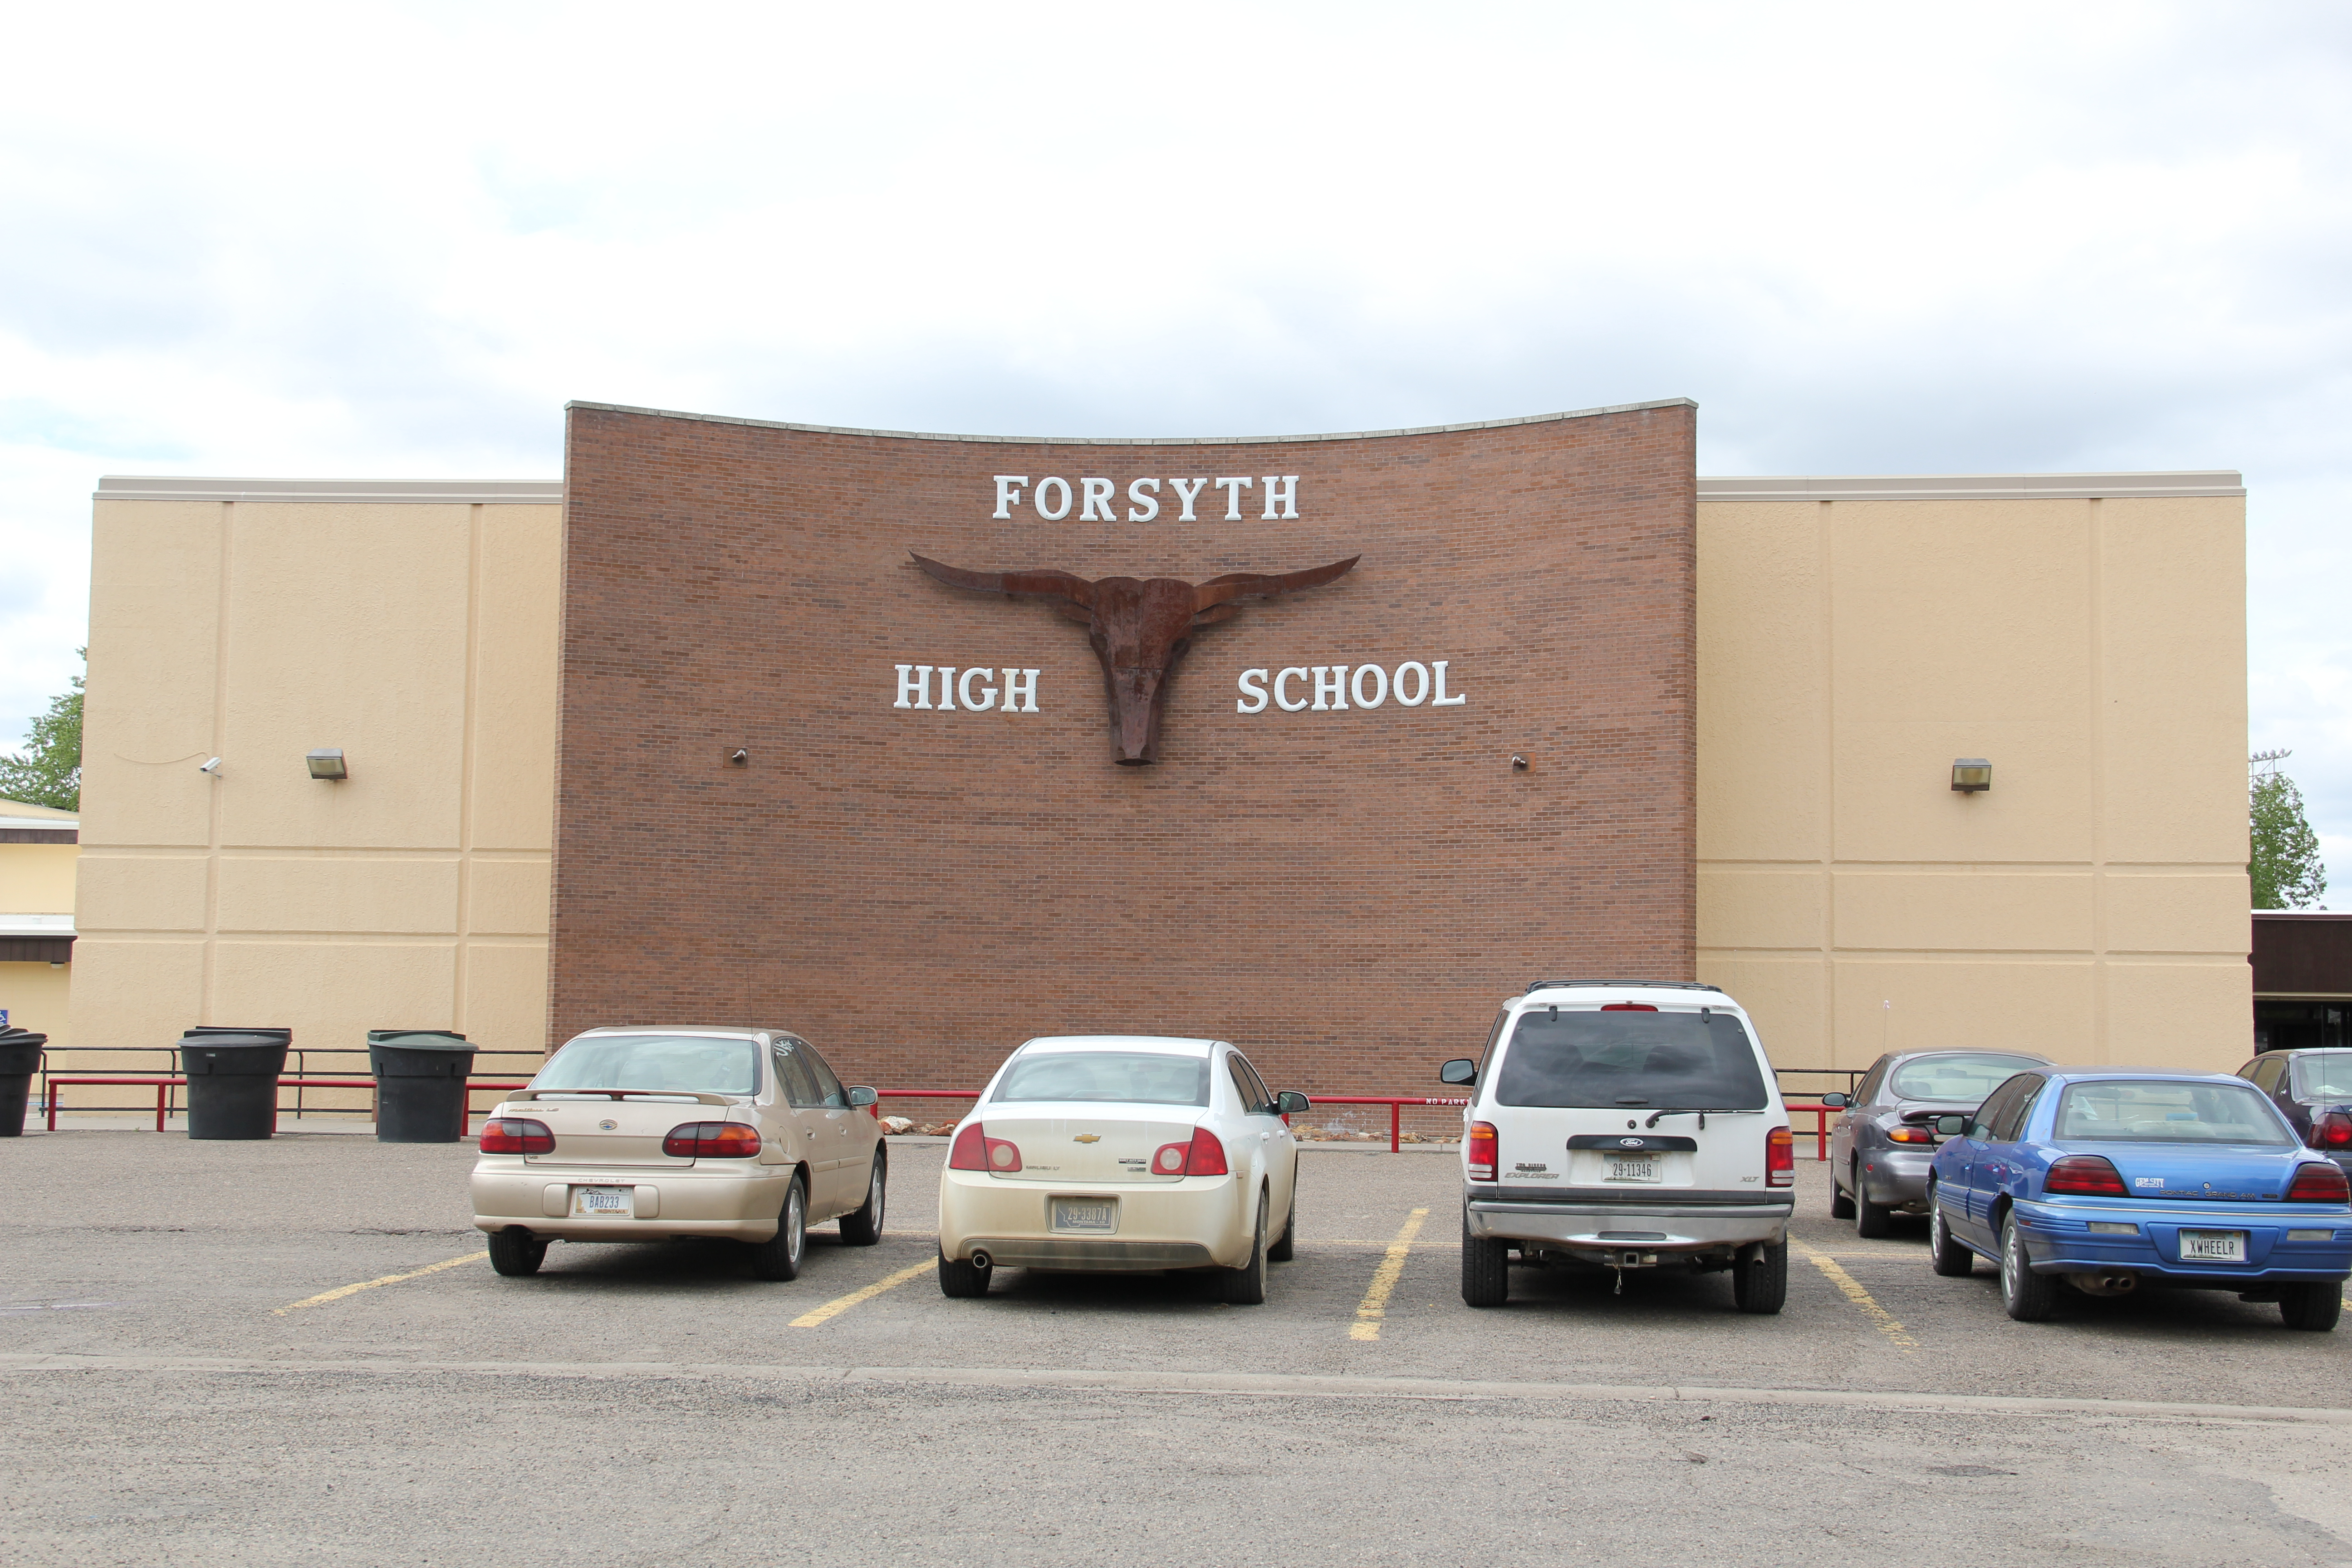 Montana rosebud county forsyth - Like The Vast Majority Of Eastern Montana Towns I Visited In 2013 Forsyth Has Lost Population From 1980 Then Over 2500 Lived There In 2010 The Census